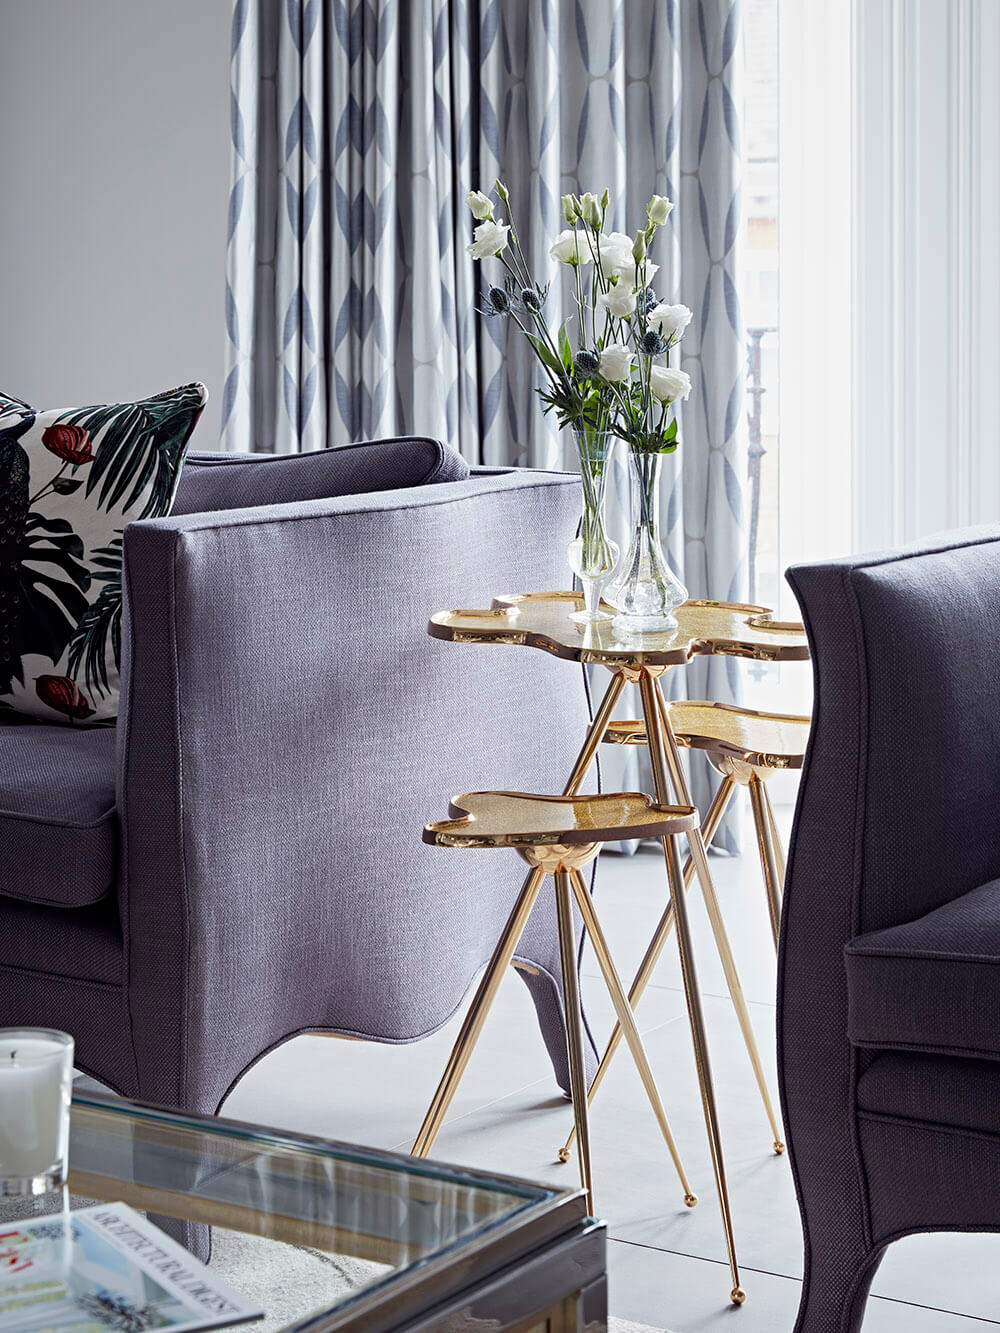 Chelsea - SW10 - Living Room - Side Table Stack